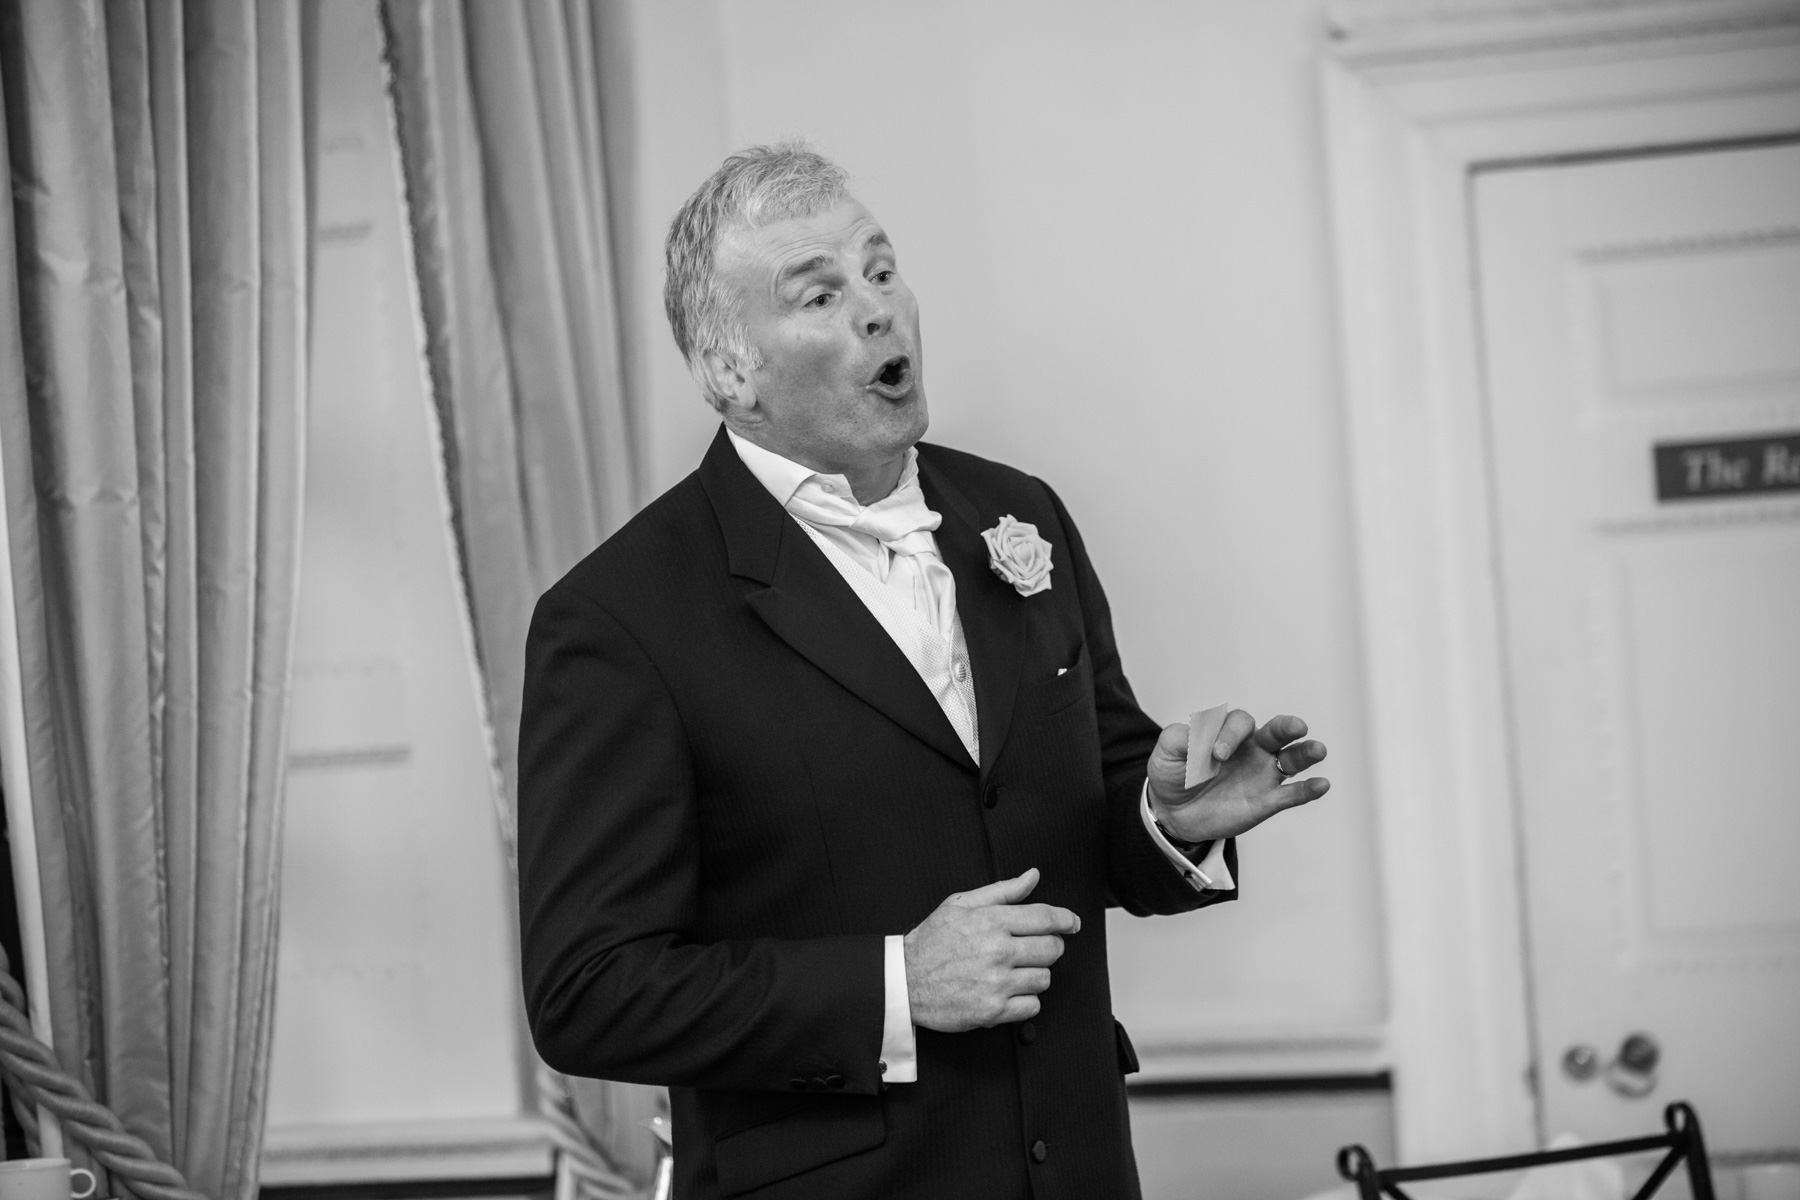 Sussex Wedding Photographer Buxted Park Richard Murgatroyd Photo